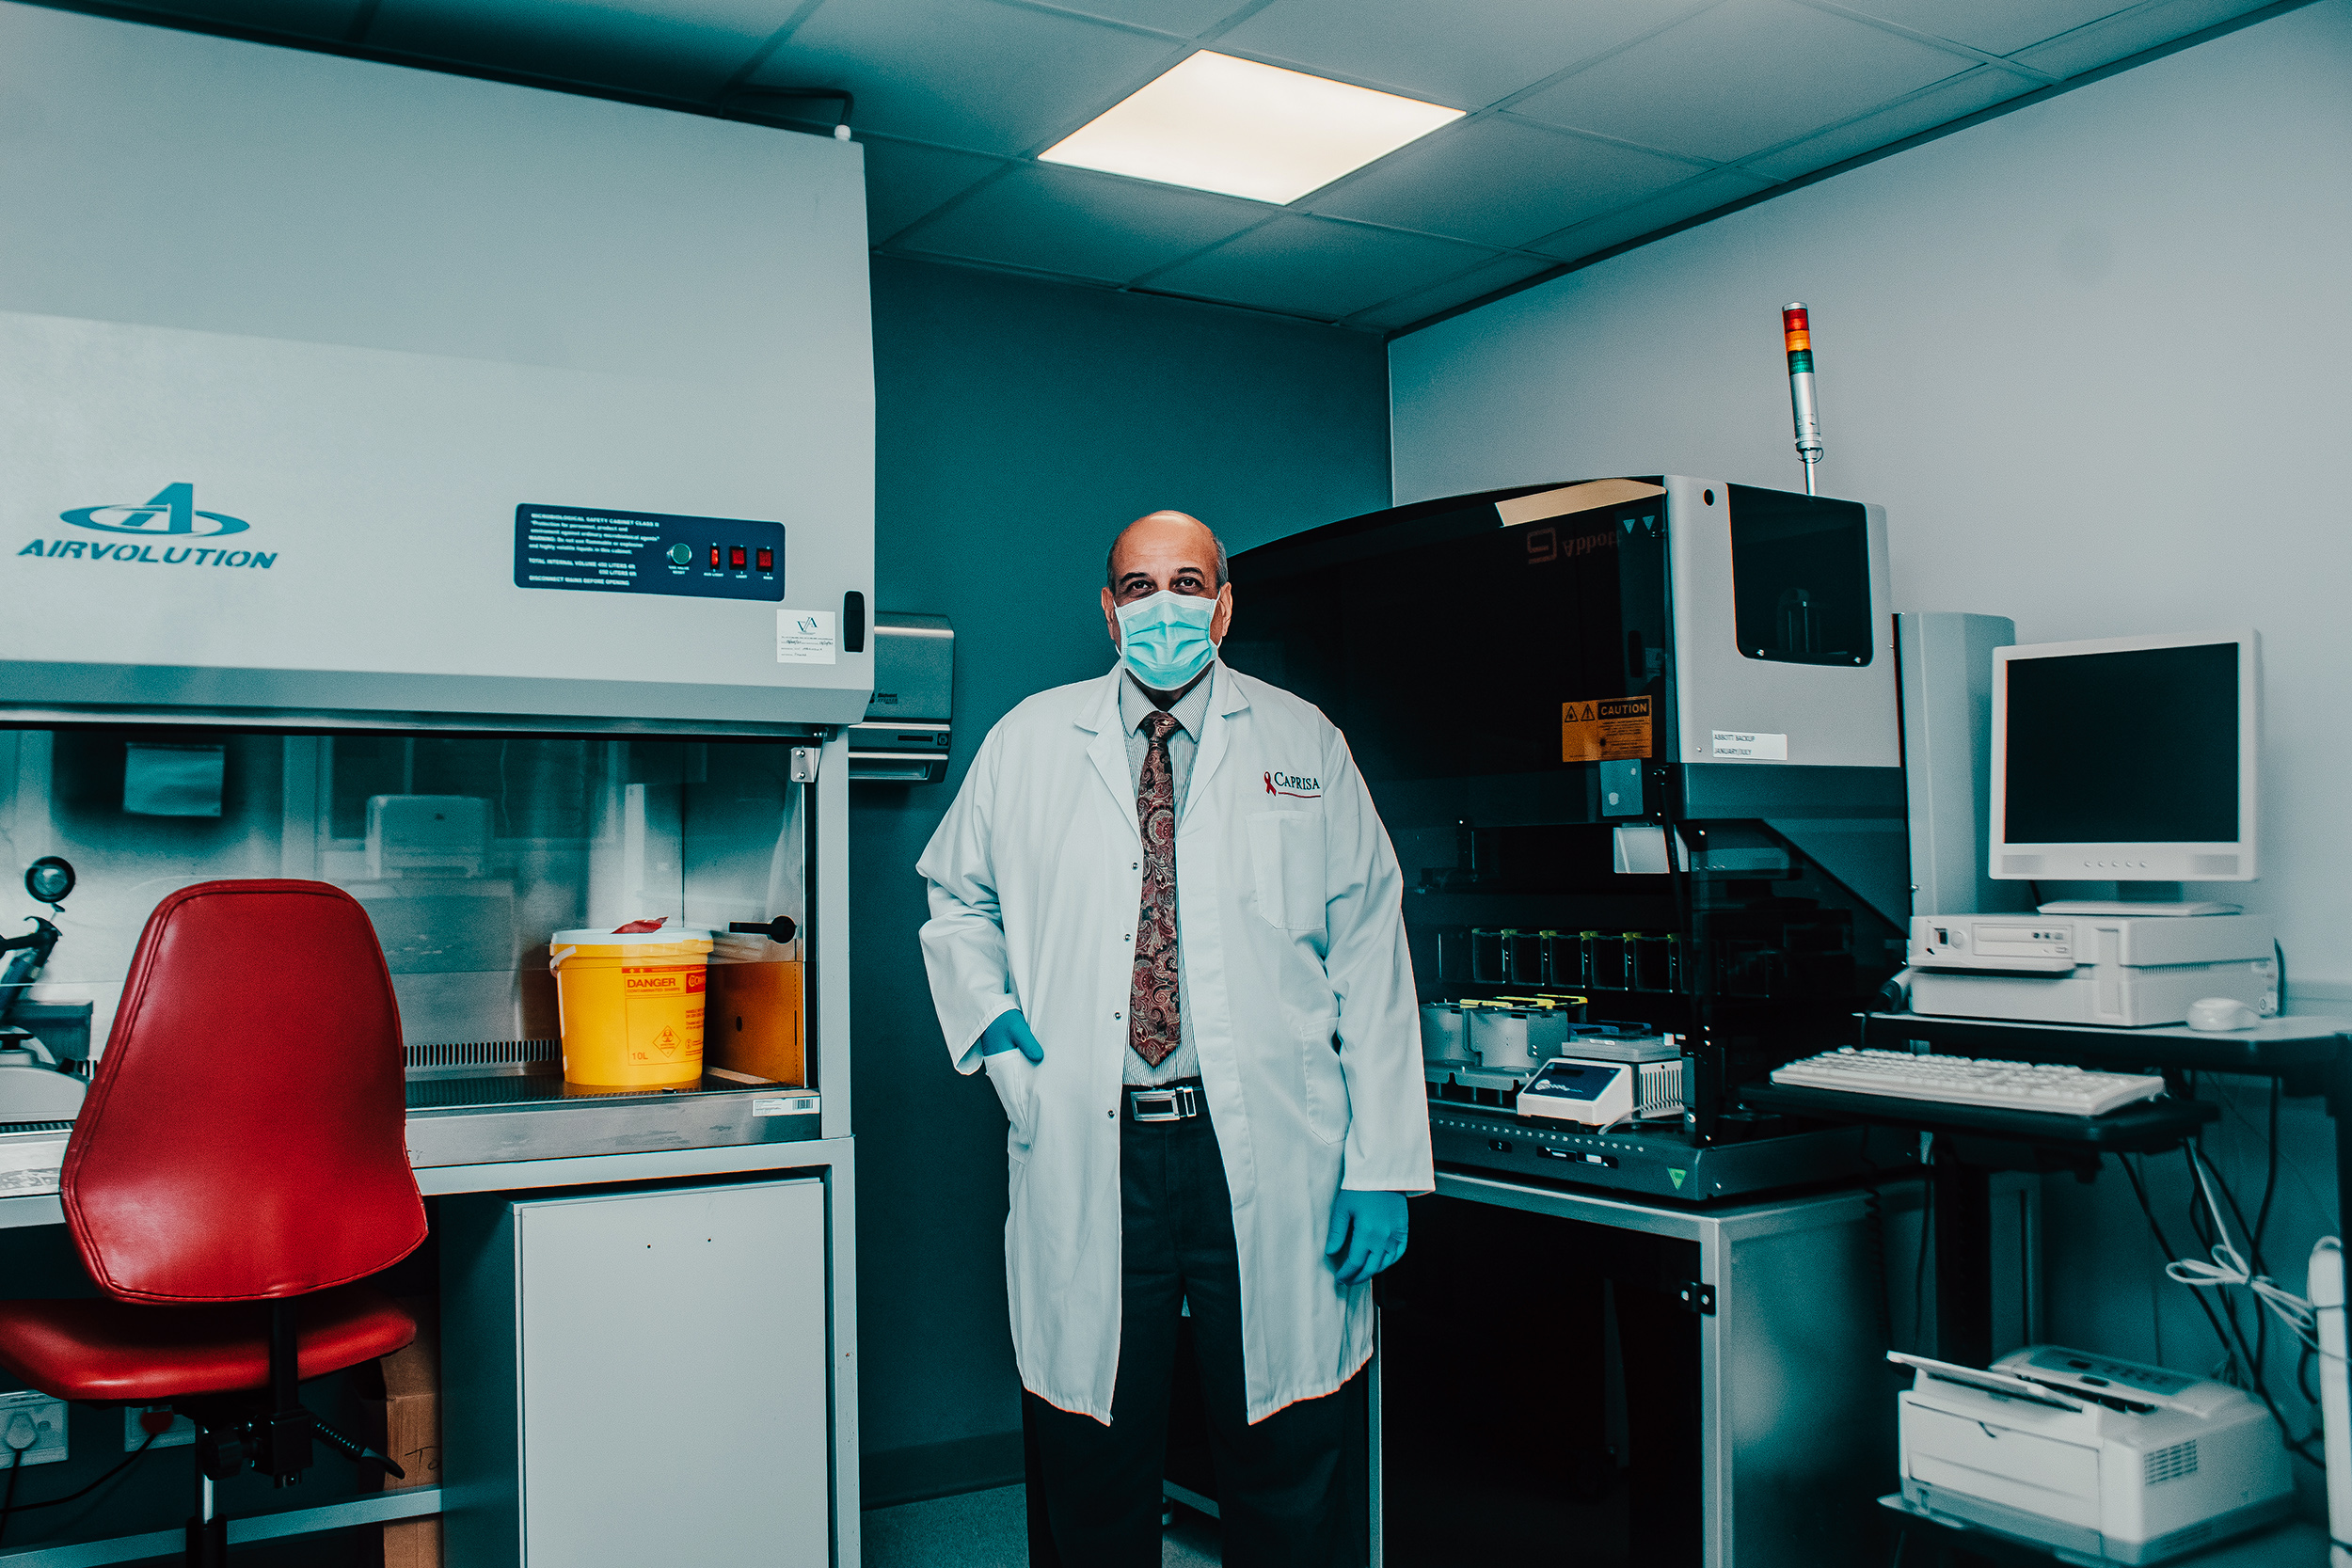 Abdool Karim is a renowned researcher who has been called South Africa's Anthony Fauci (Photograph by Teddy Msomi)